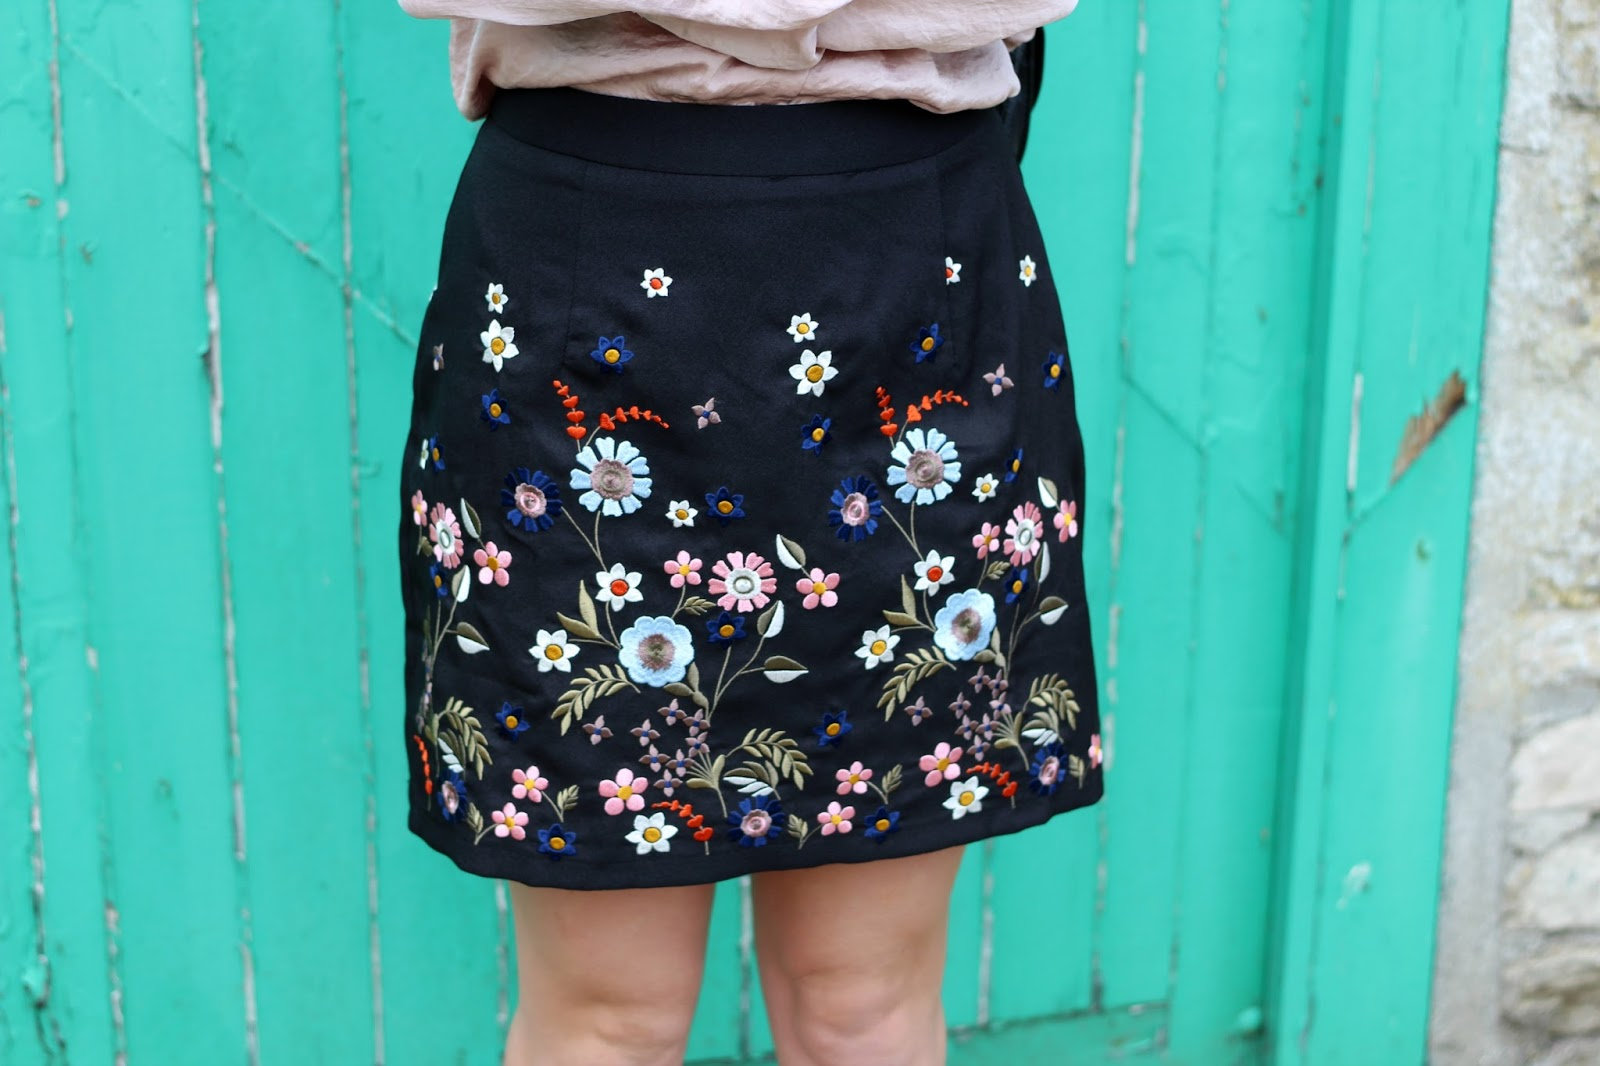 New-Look-embroidered-skirt